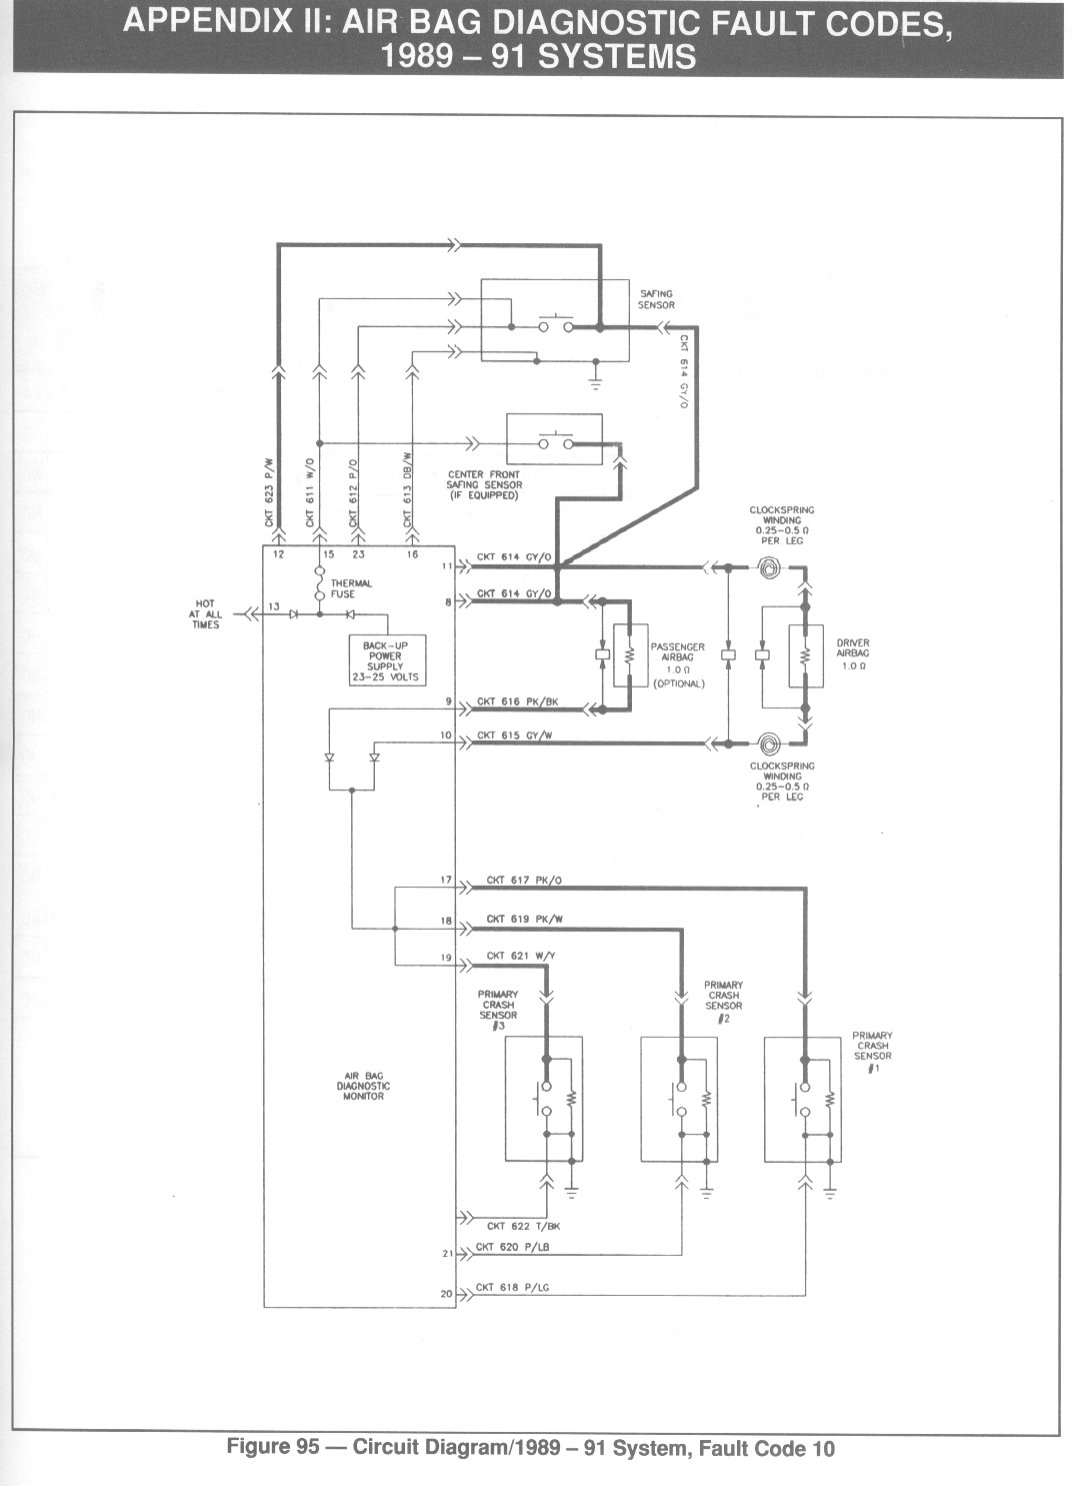 mustang 90 91 air bag diagnostic codes air bag 89 91 code 10 circuit diagram